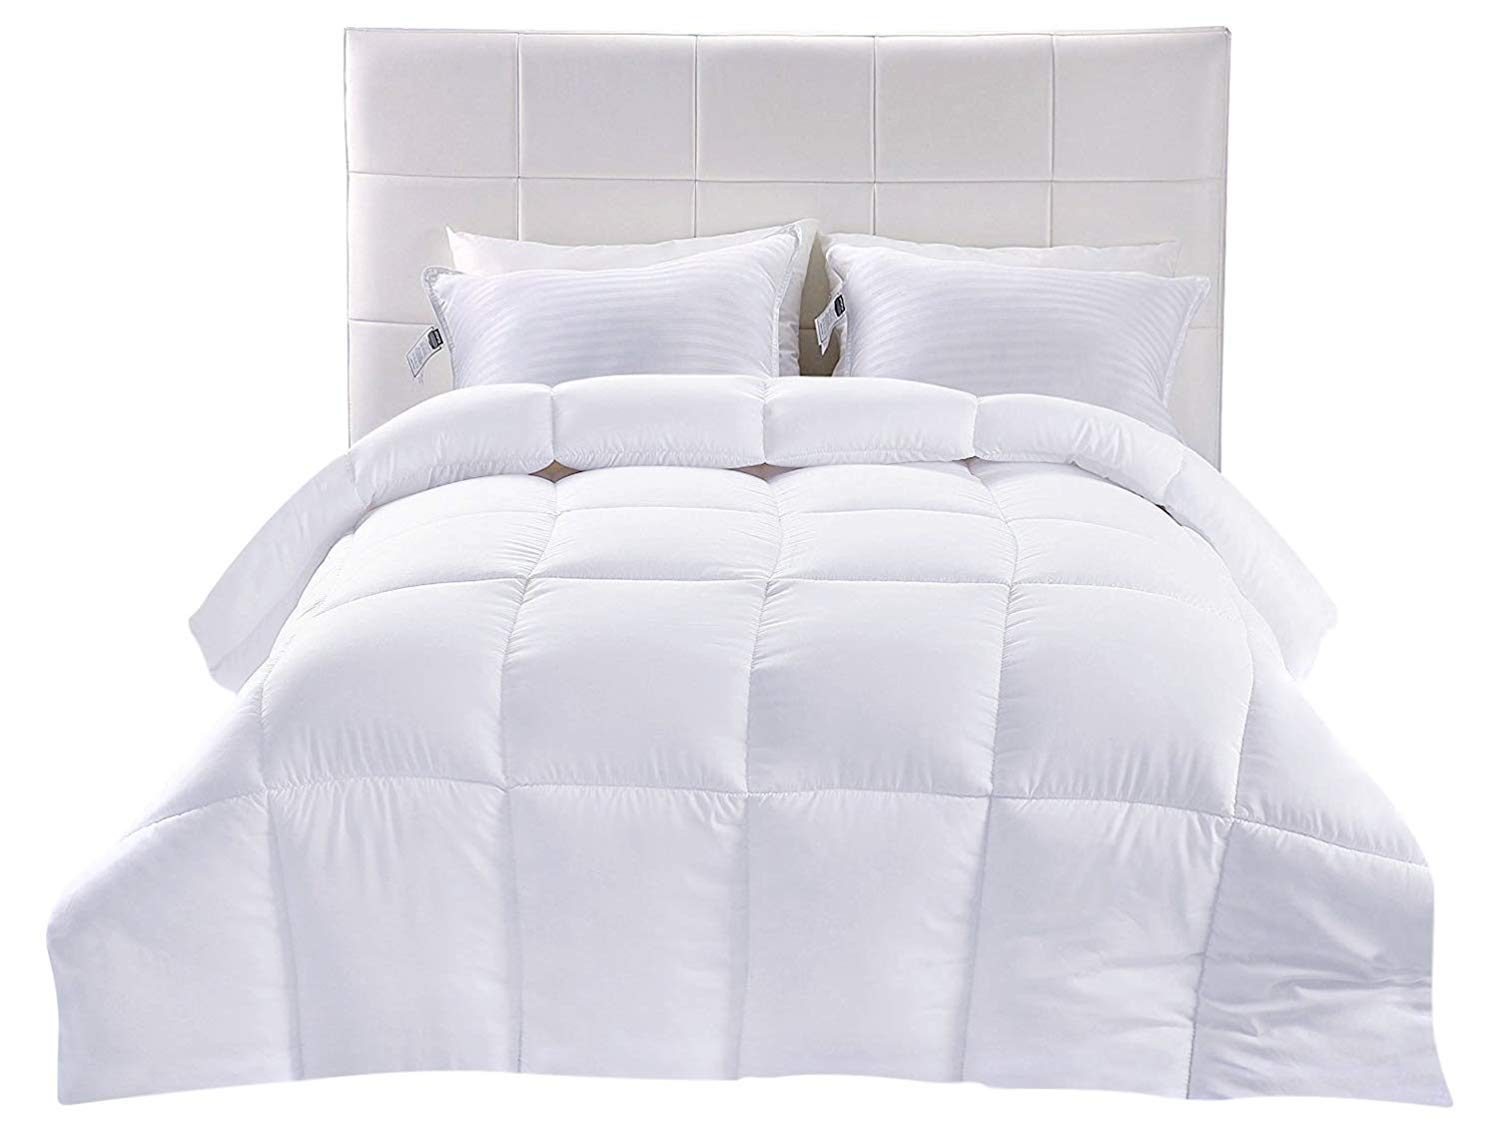 Utopia Bedding Lightweight Comforter, Ultra Soft Down Alternative (White, Twin) - All Season Comforter - Plush Siliconized Fiberfill Duvet Insert - Box Stitched FBA_B01JPECQF8